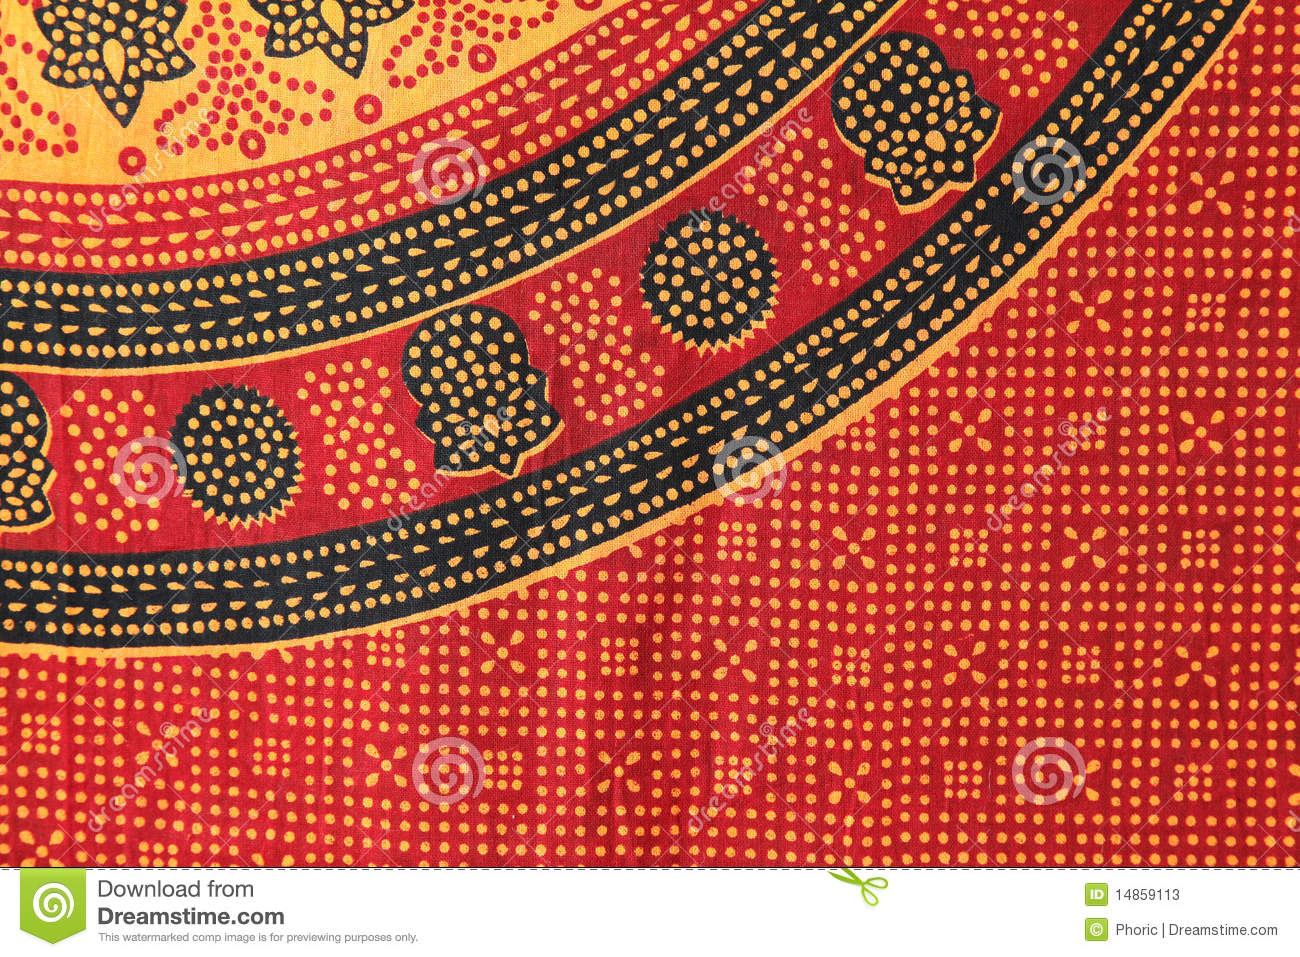 Indian patterned fabric